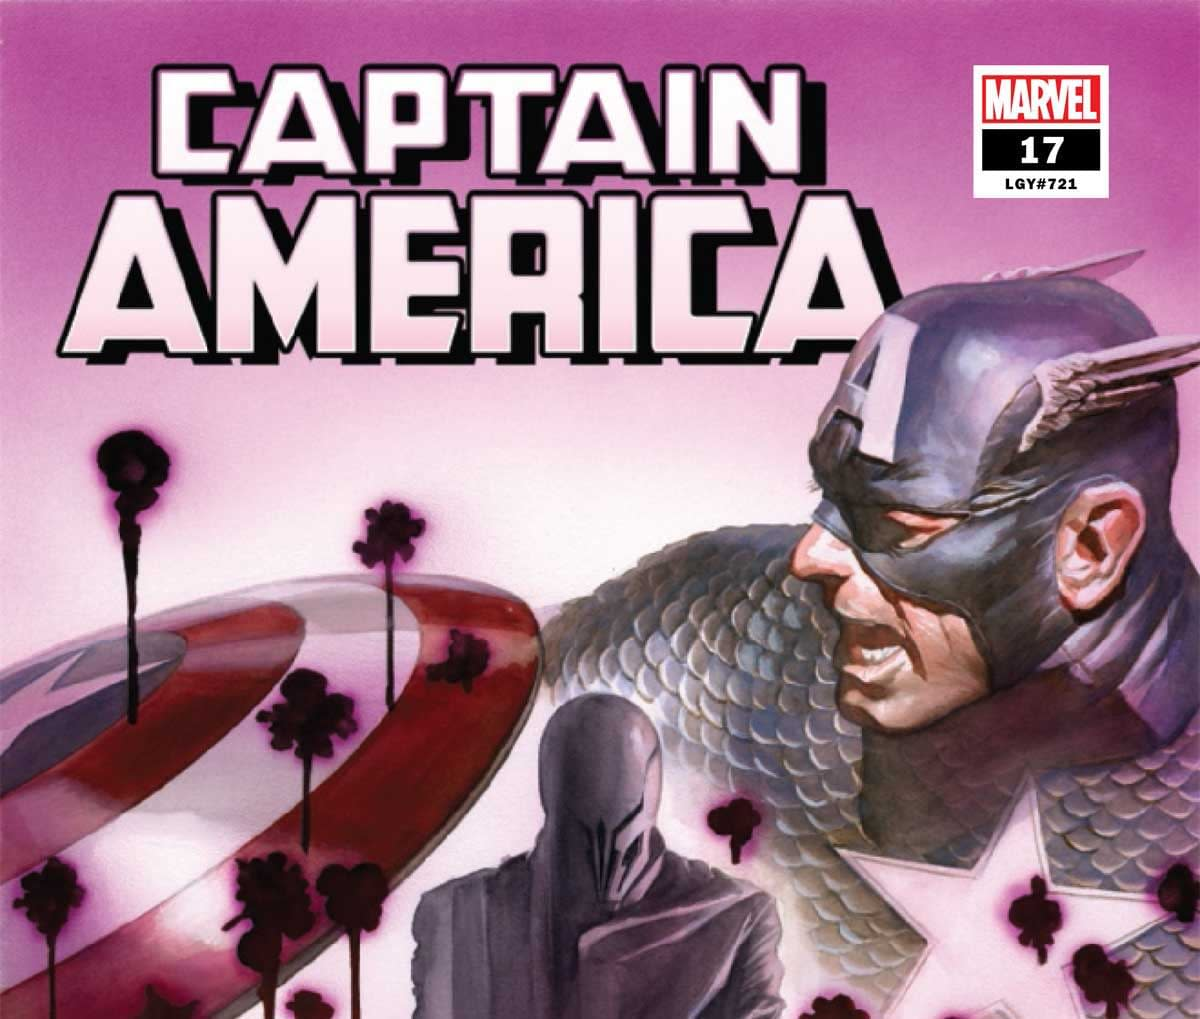 REVIEW: Captain America #17